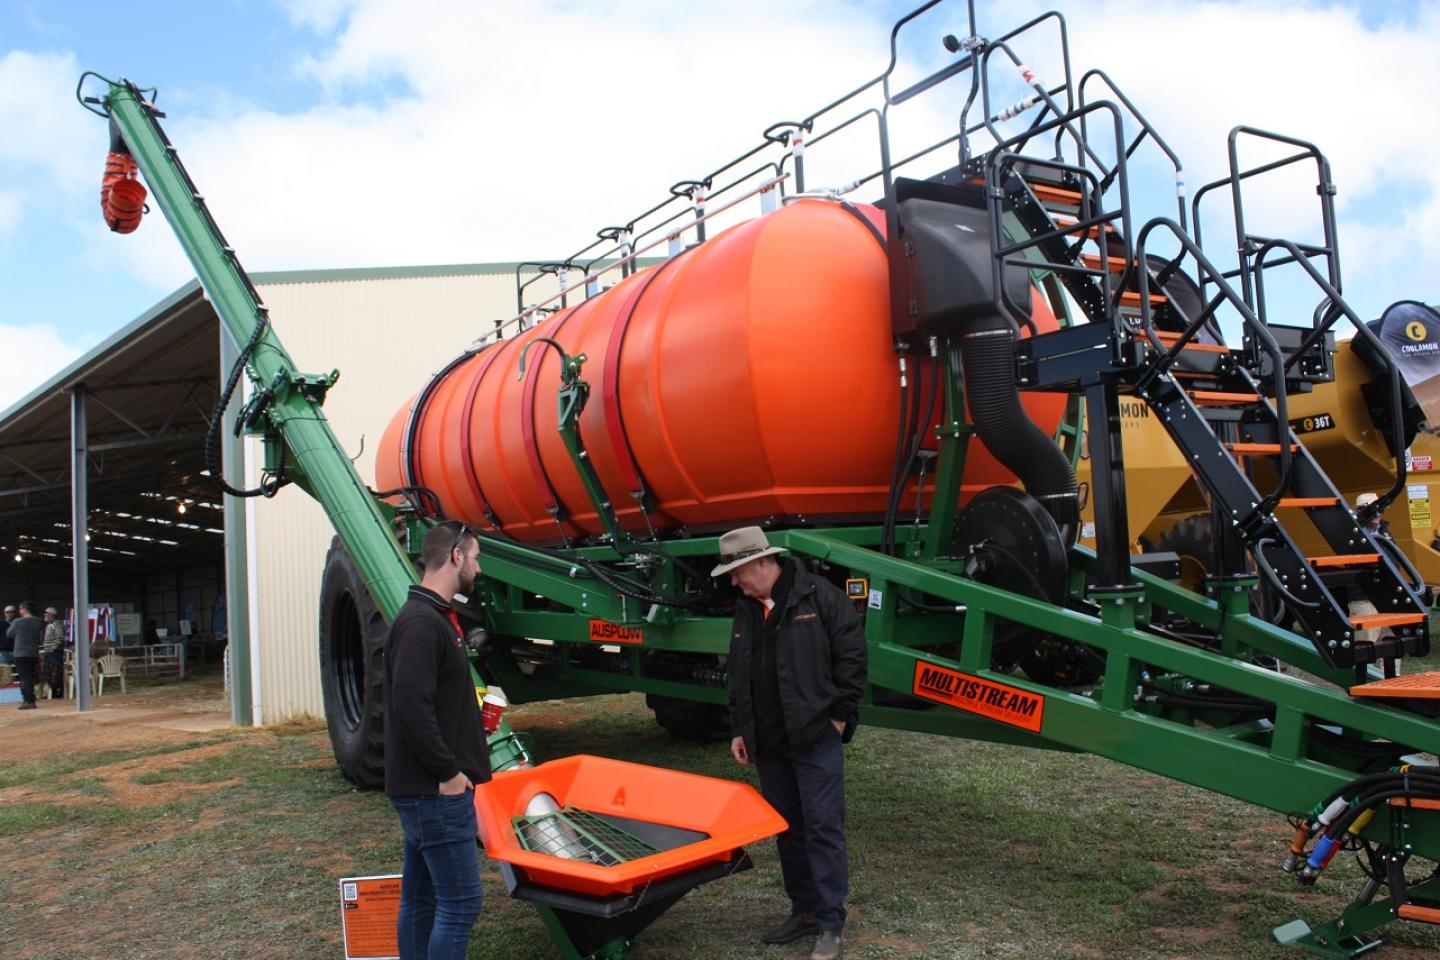 Farmers Centre Esperance salesman Jakke Little (left) is taken on a walk-round of the Series II Multistream at the Newedegate Machinery Field Days earlier this month by Ausplow general manager Chris Farmer. Significant changes have been made for 2019 models.